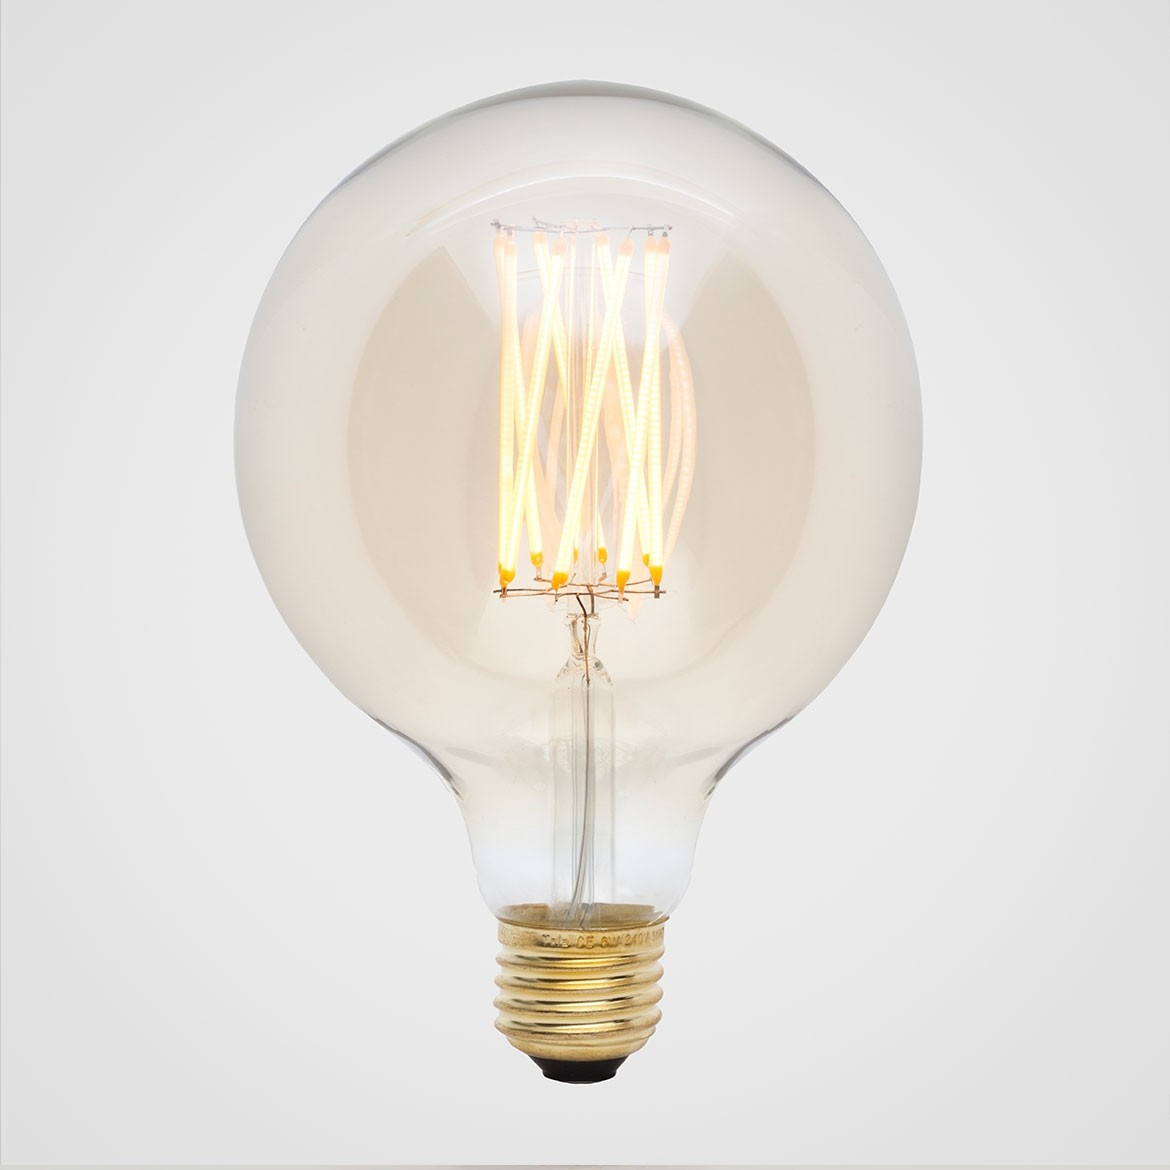 Gaia 6 watt by Tala